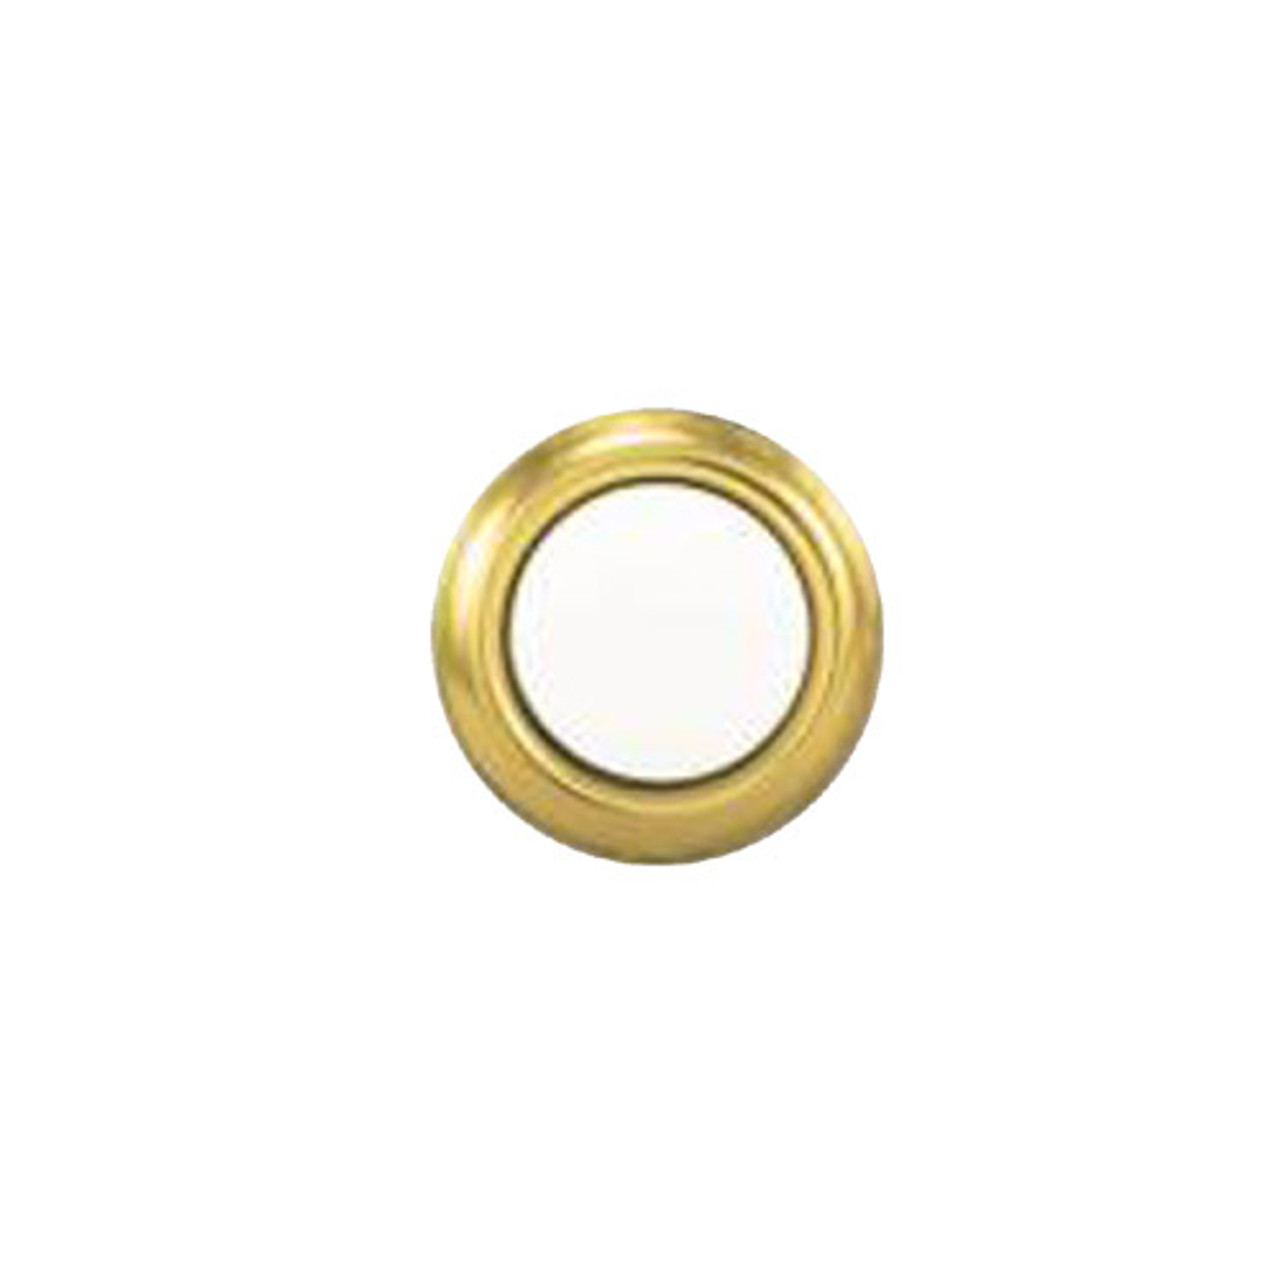 45G Trine Bell Button Gold Rim with Pearl Center